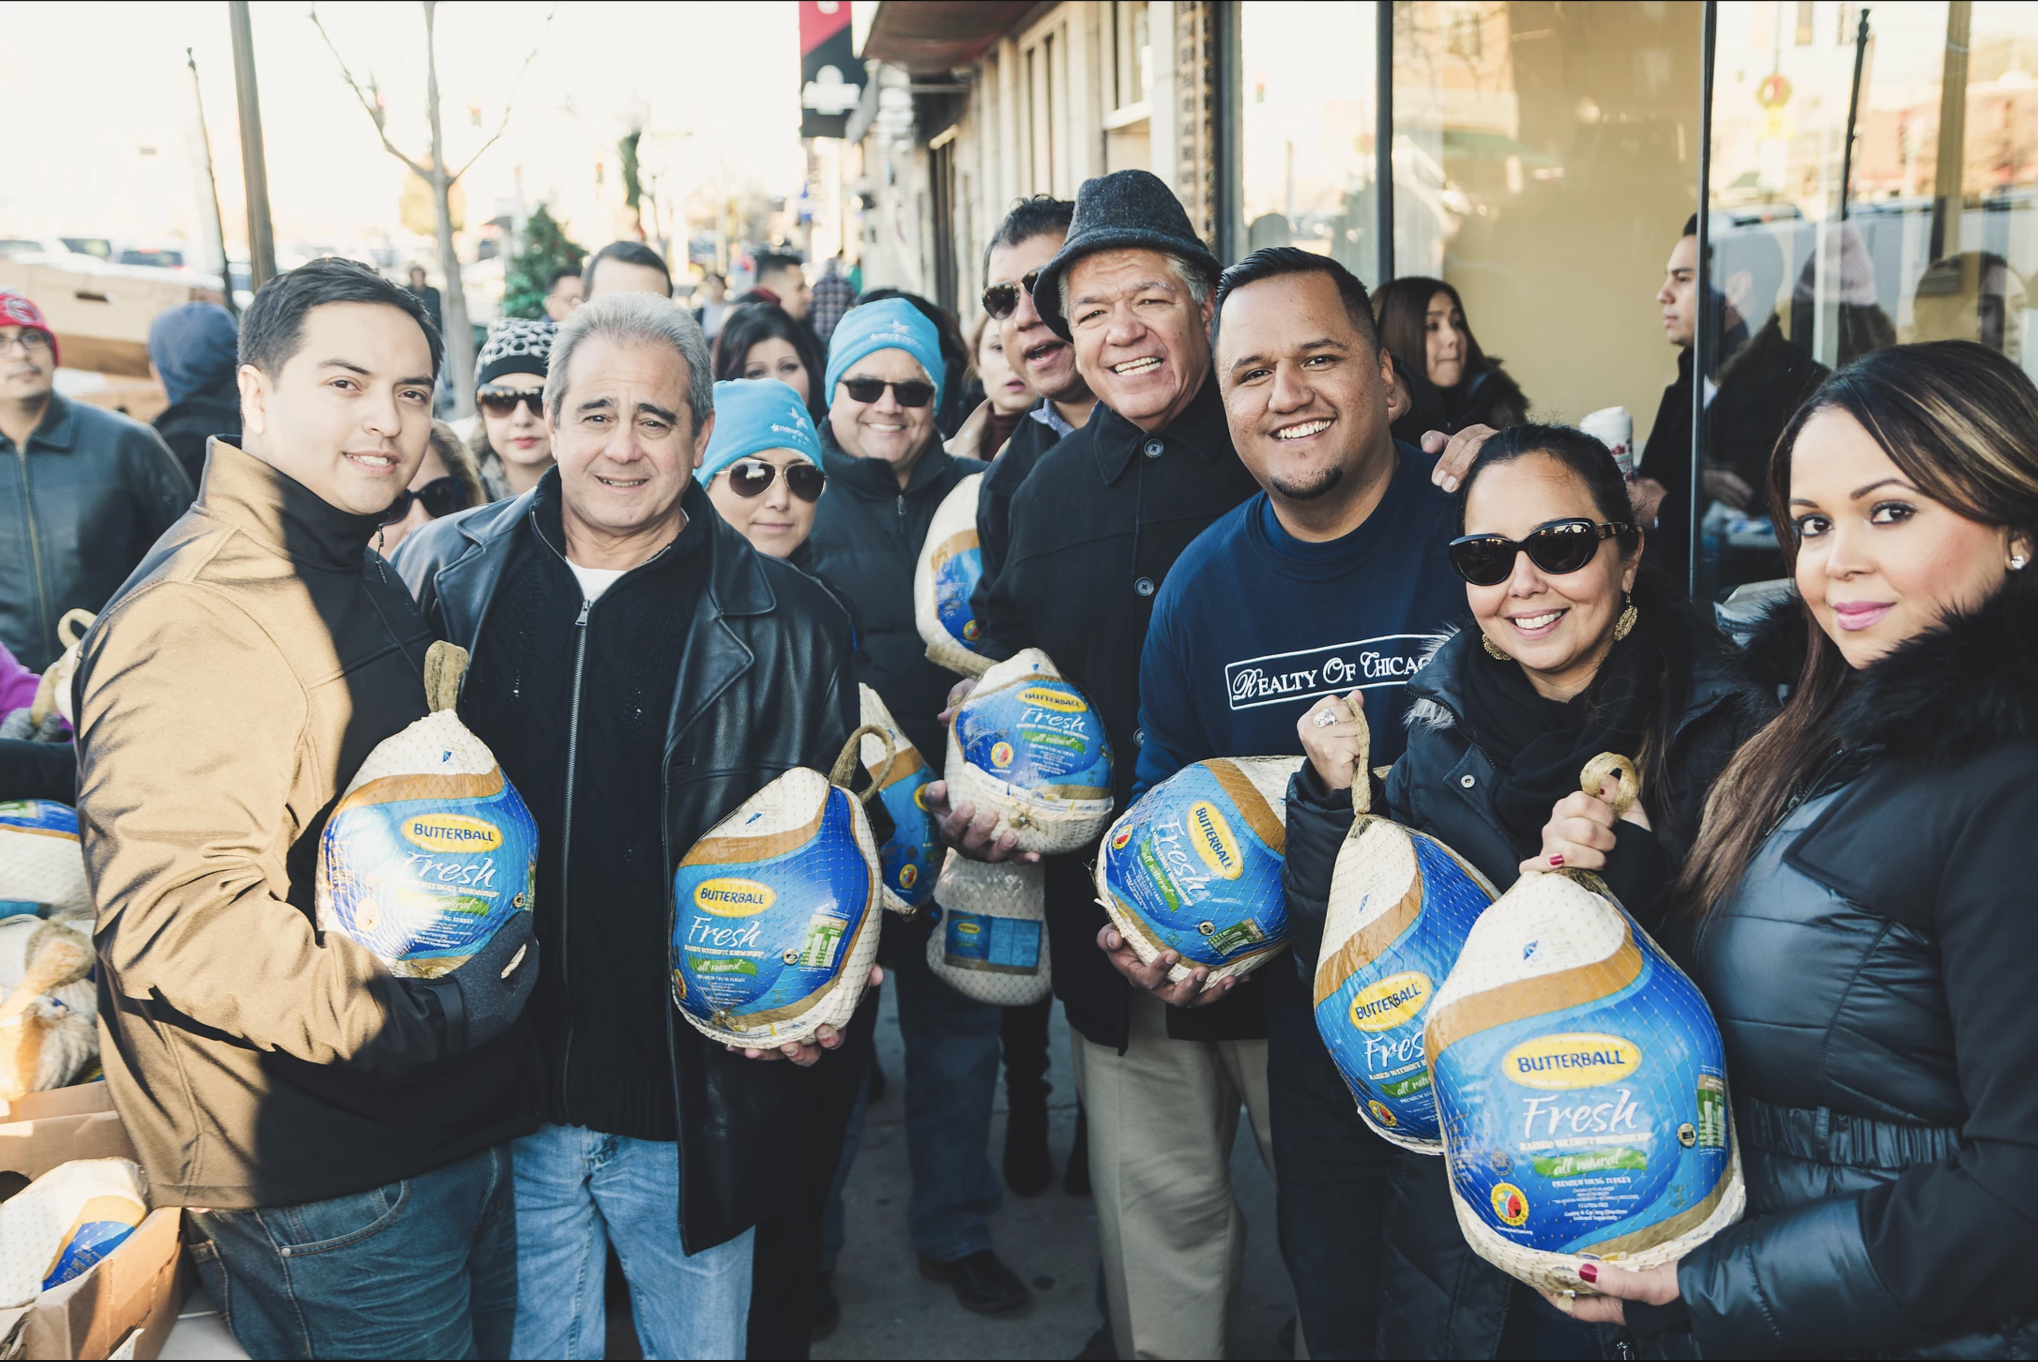 Realty of Chicago'sTurkey Giveaway - One of the best traditional events Realty of Chicago started is their annual turkey giveaway. It was started in 2014 by giving away 500 turkeys within the community a few days before thanksgiving. This quickly became an amazing tradition when their agents challenged themselves to give away double of what they did the previous year. In 2015 they fed more than 5,000 people on thanksgiving.